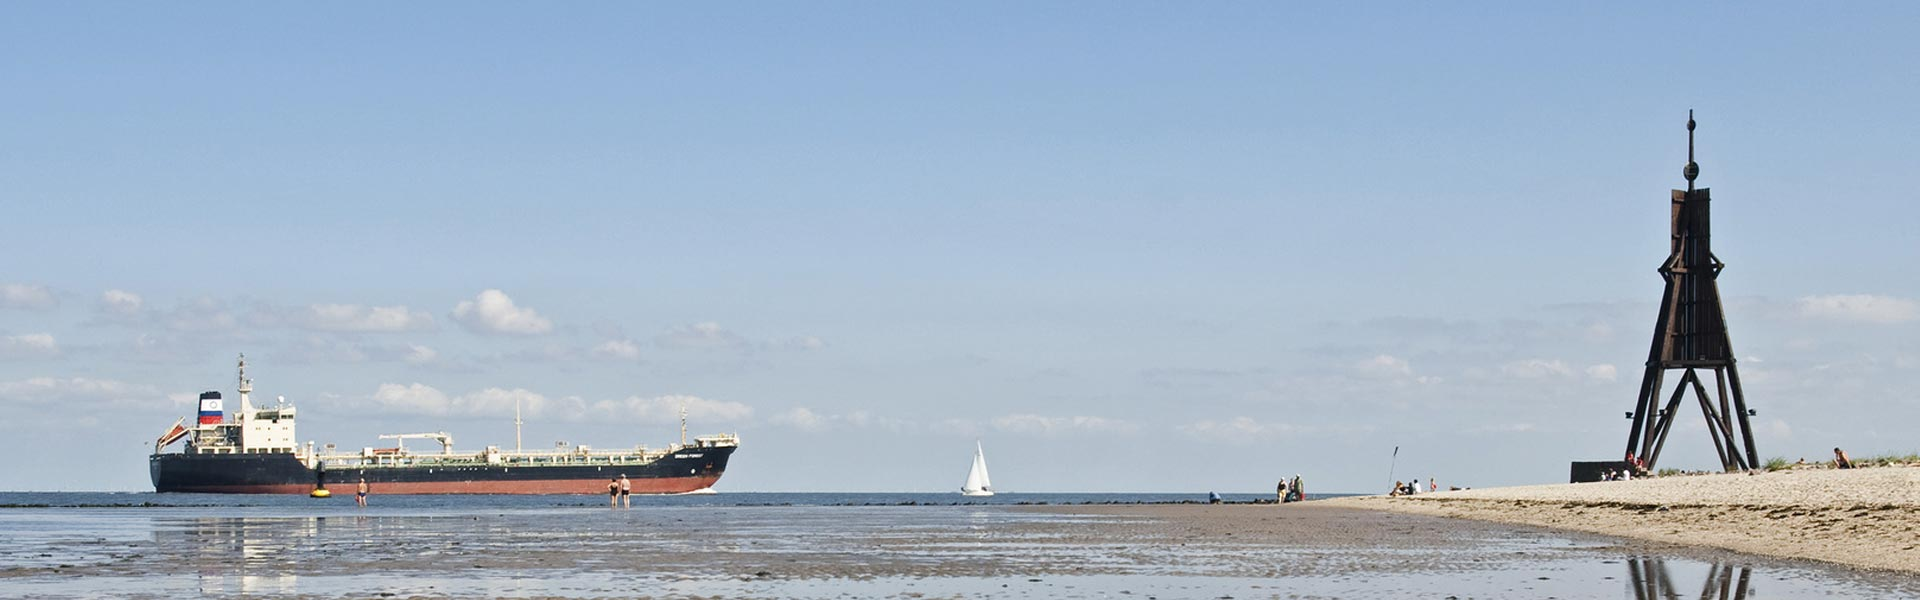 Cuxhaven - Maritime city with a future